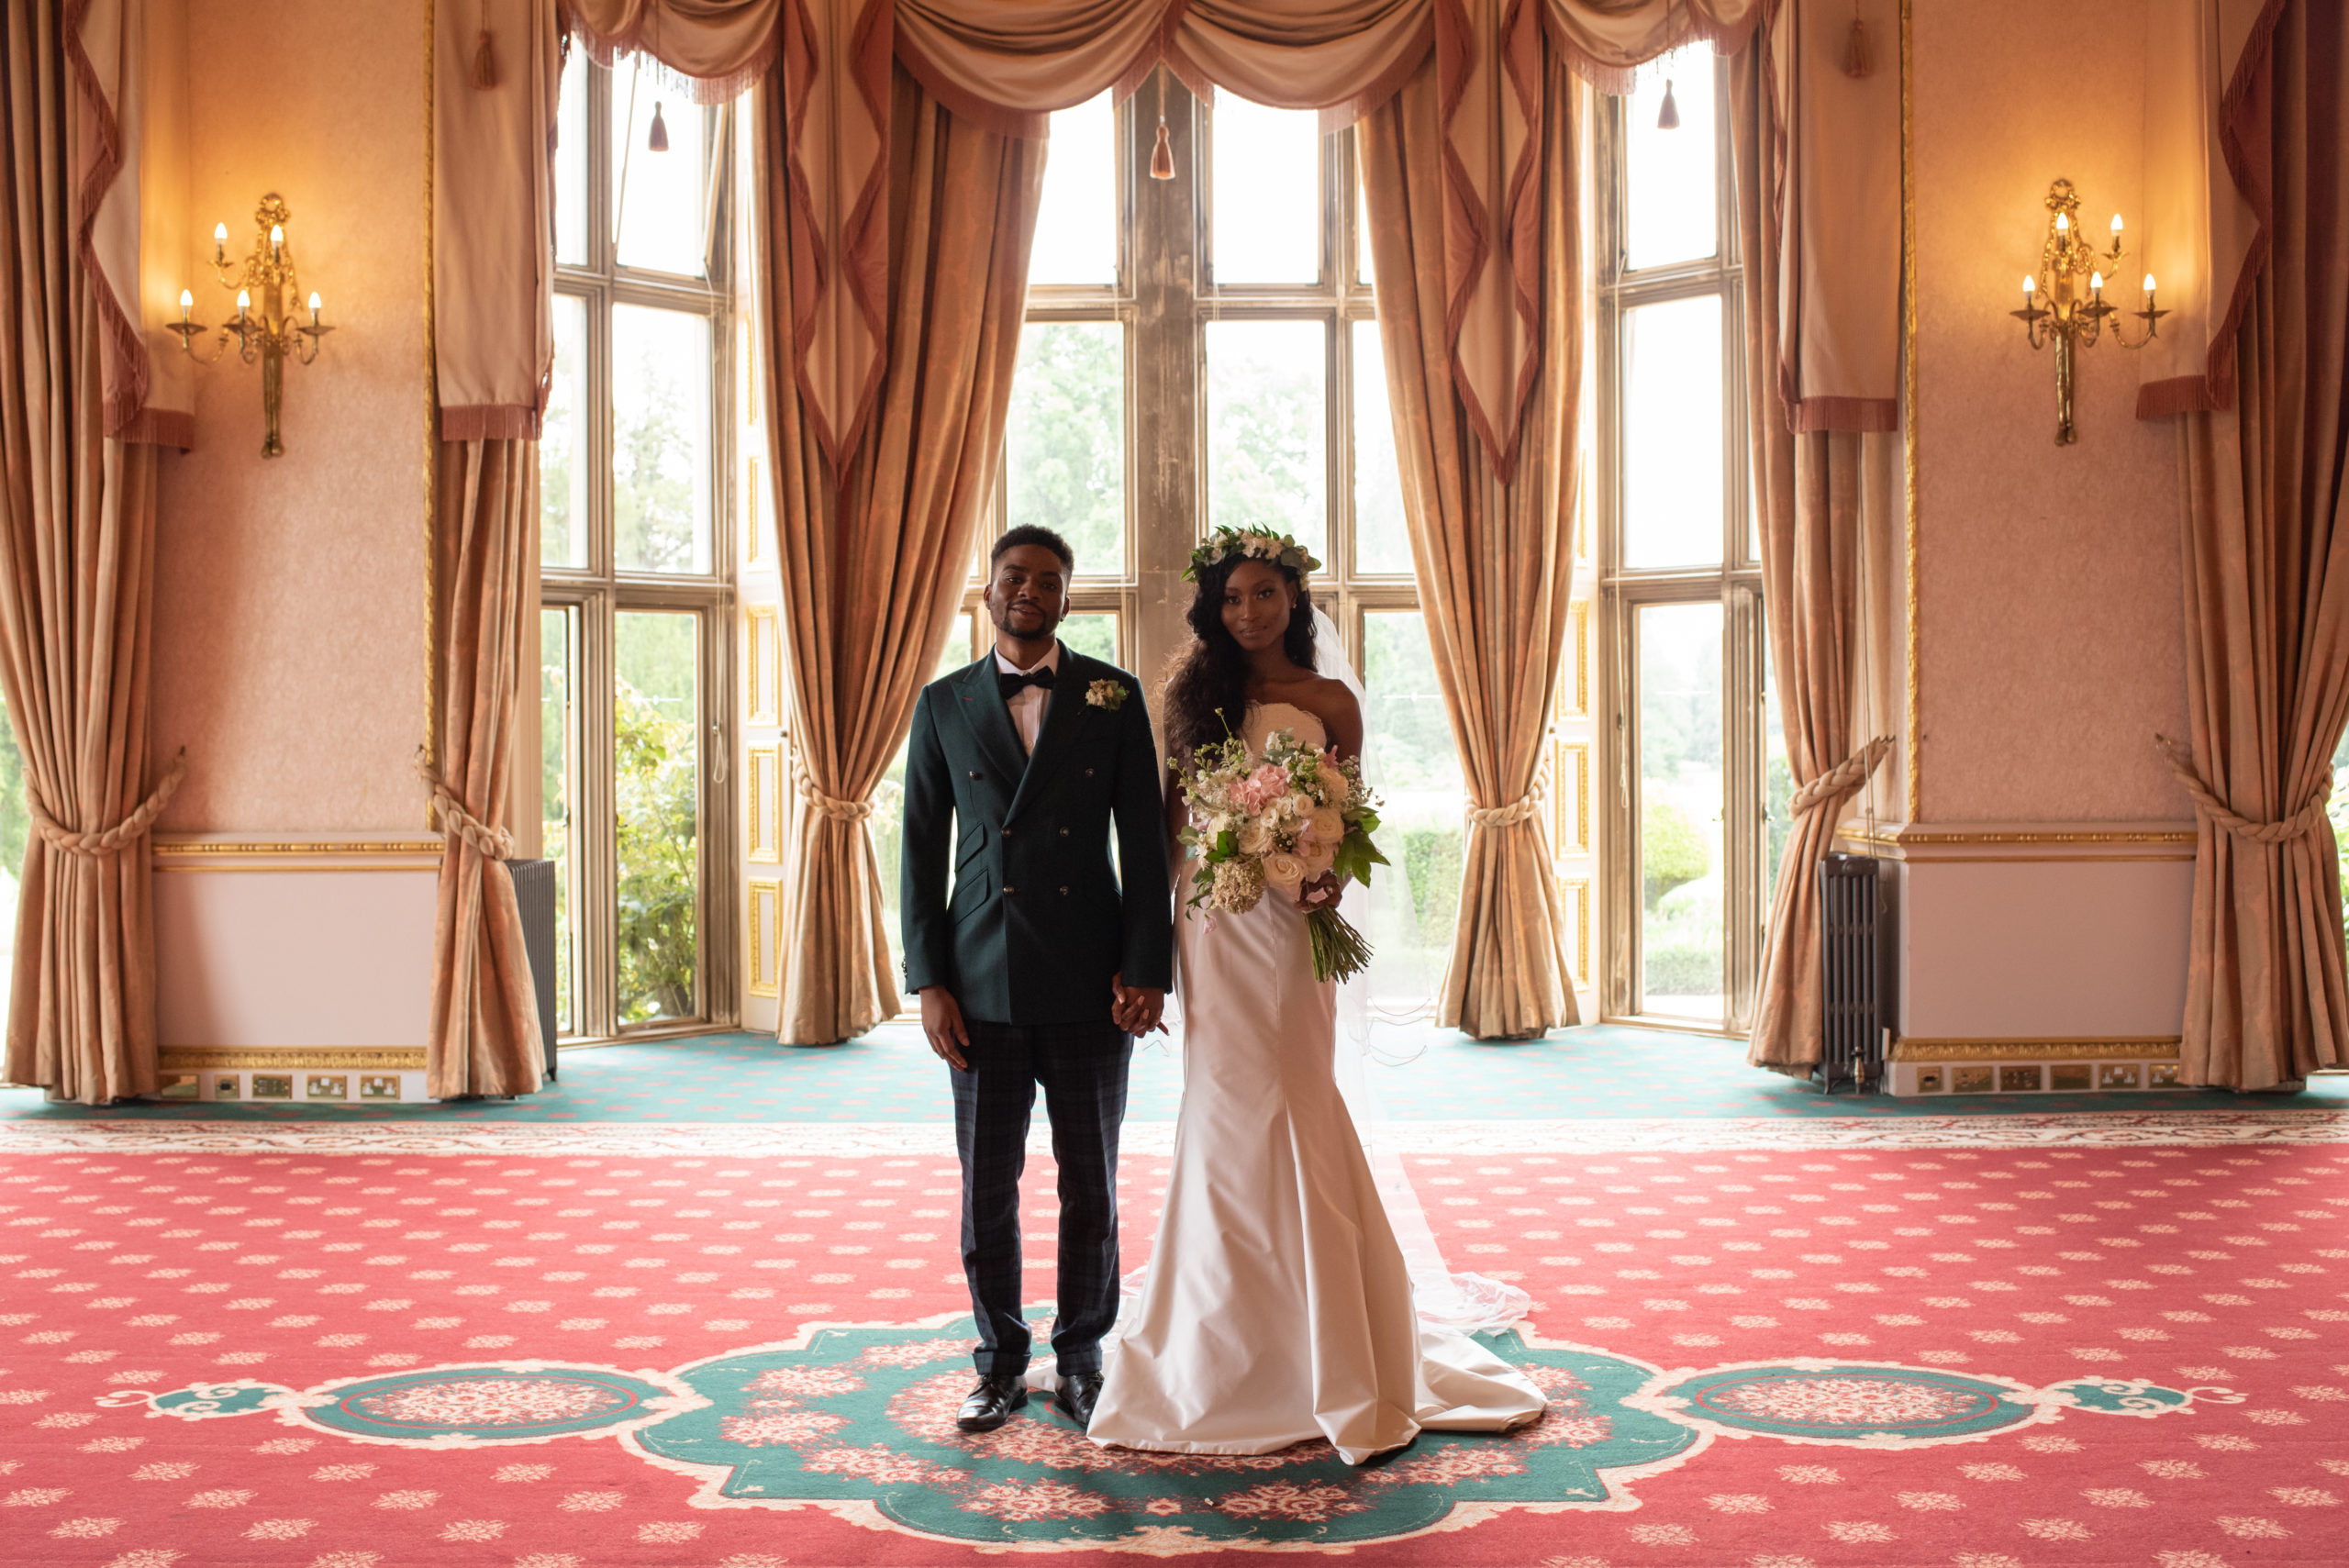 multicultural bride and groom in a room